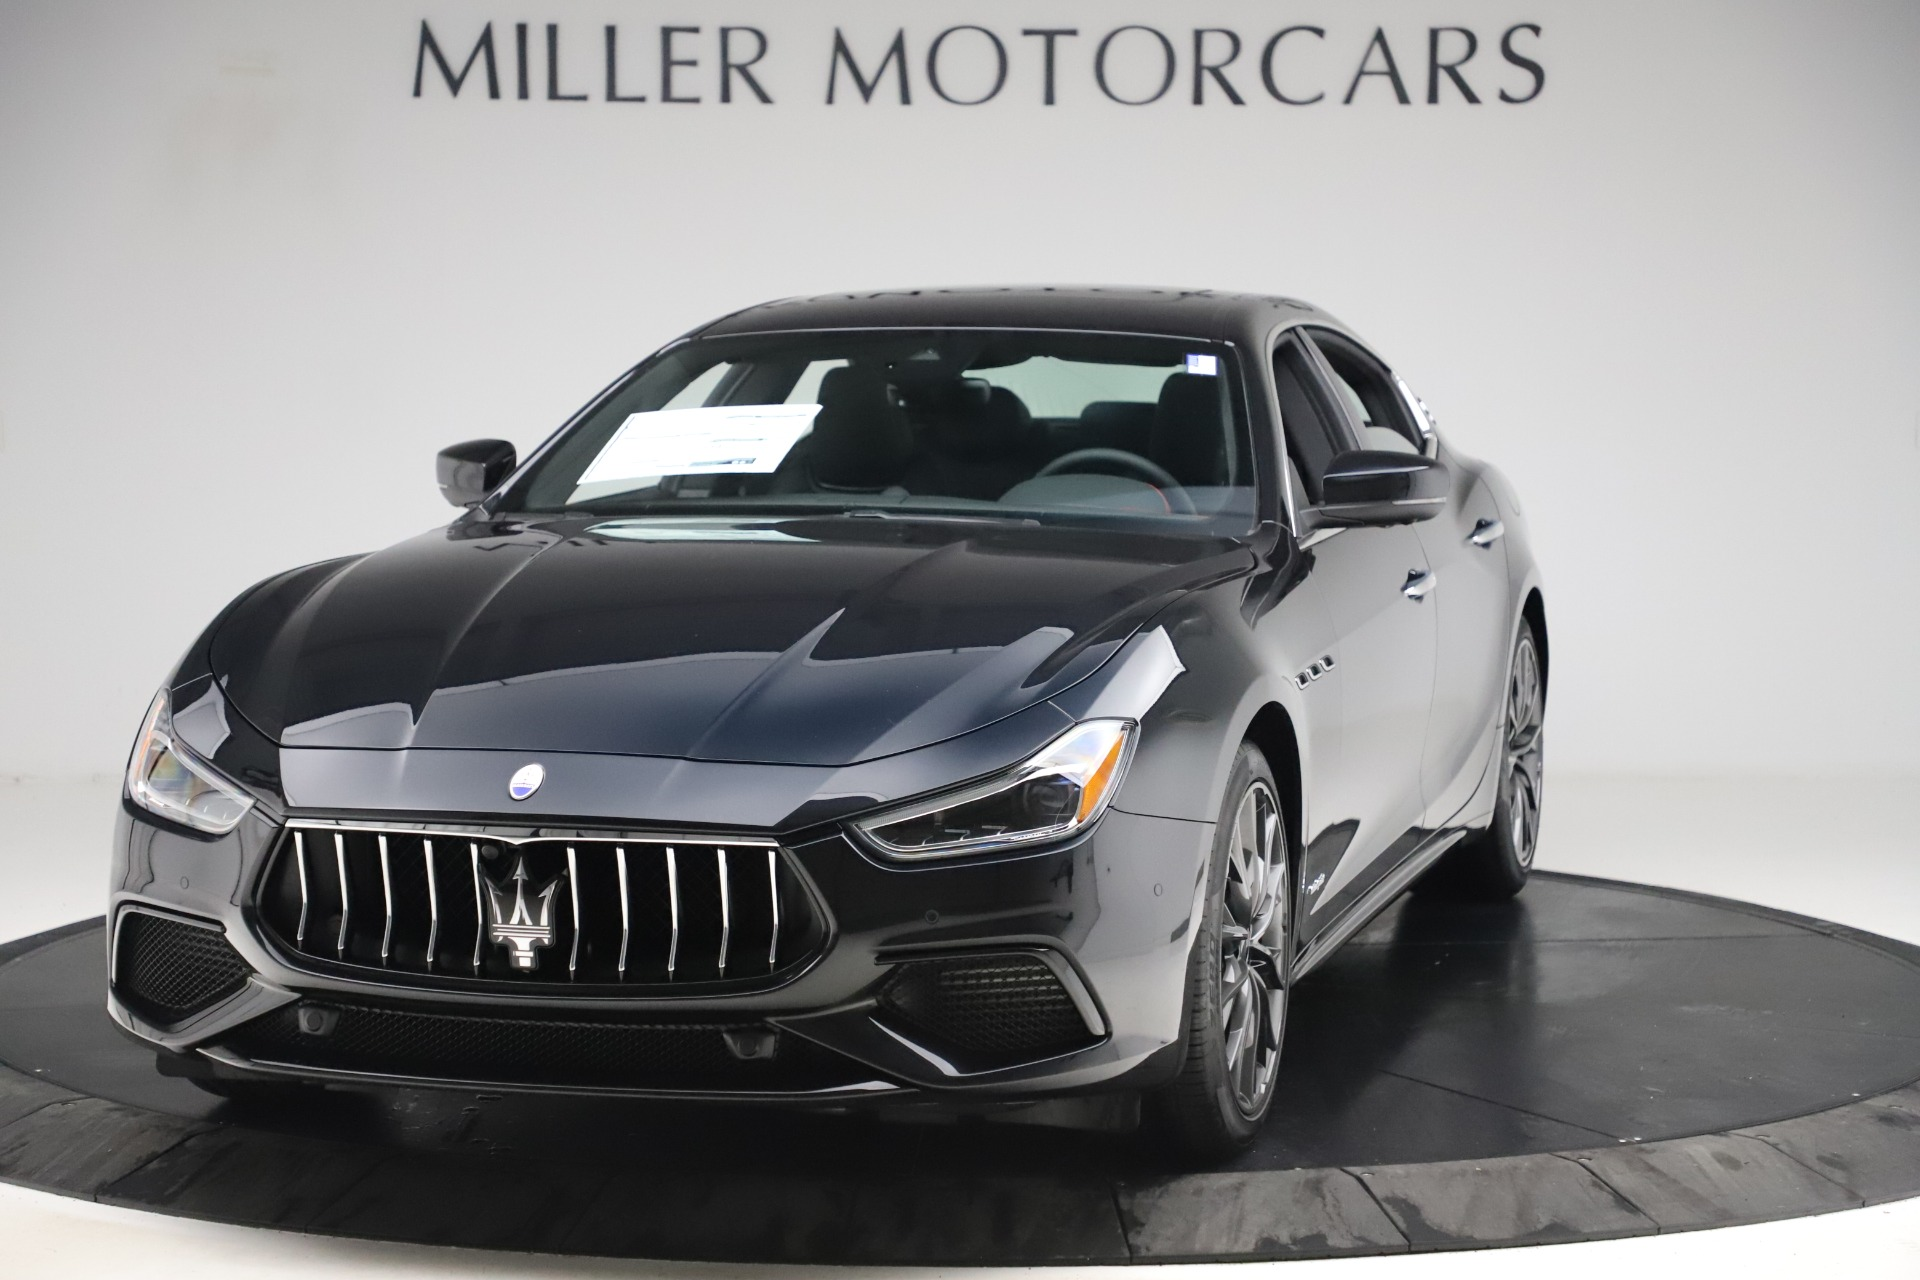 New 2019 Maserati Ghibli S Q4 GranSport for sale $99,905 at Alfa Romeo of Greenwich in Greenwich CT 06830 1